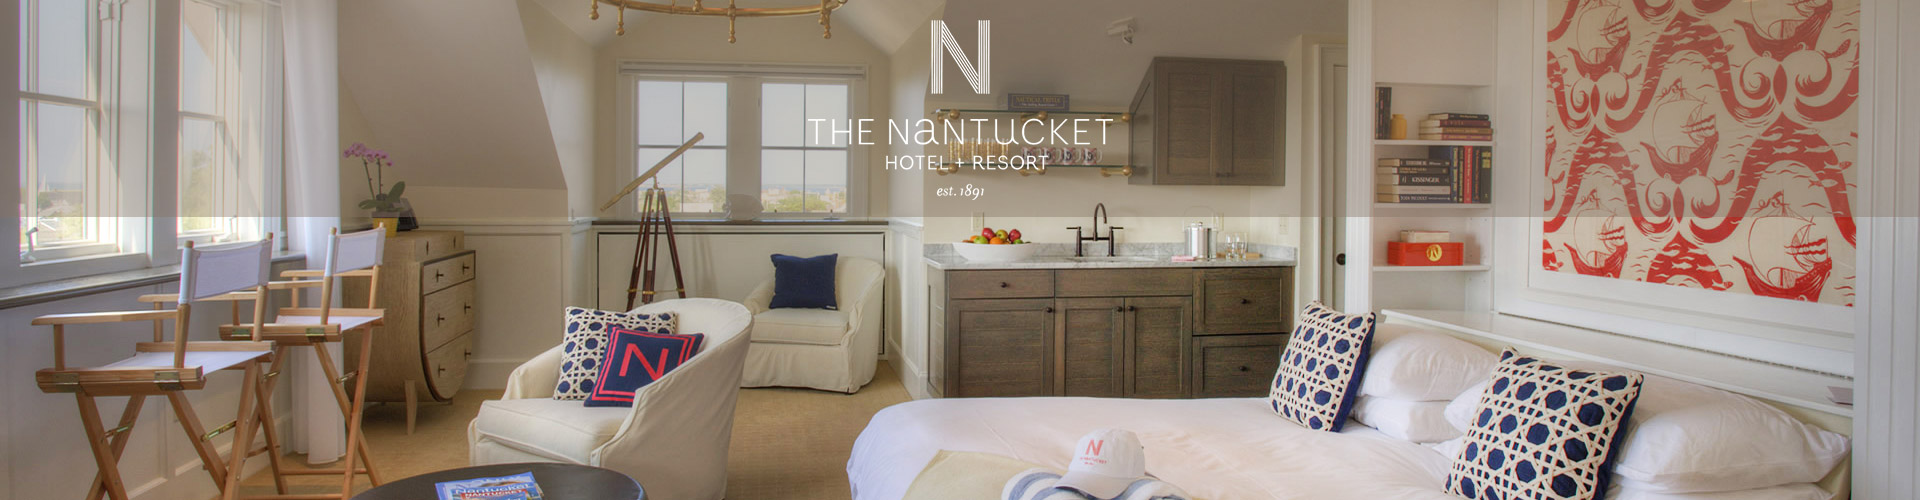 The Nantucket Hotel + Resort